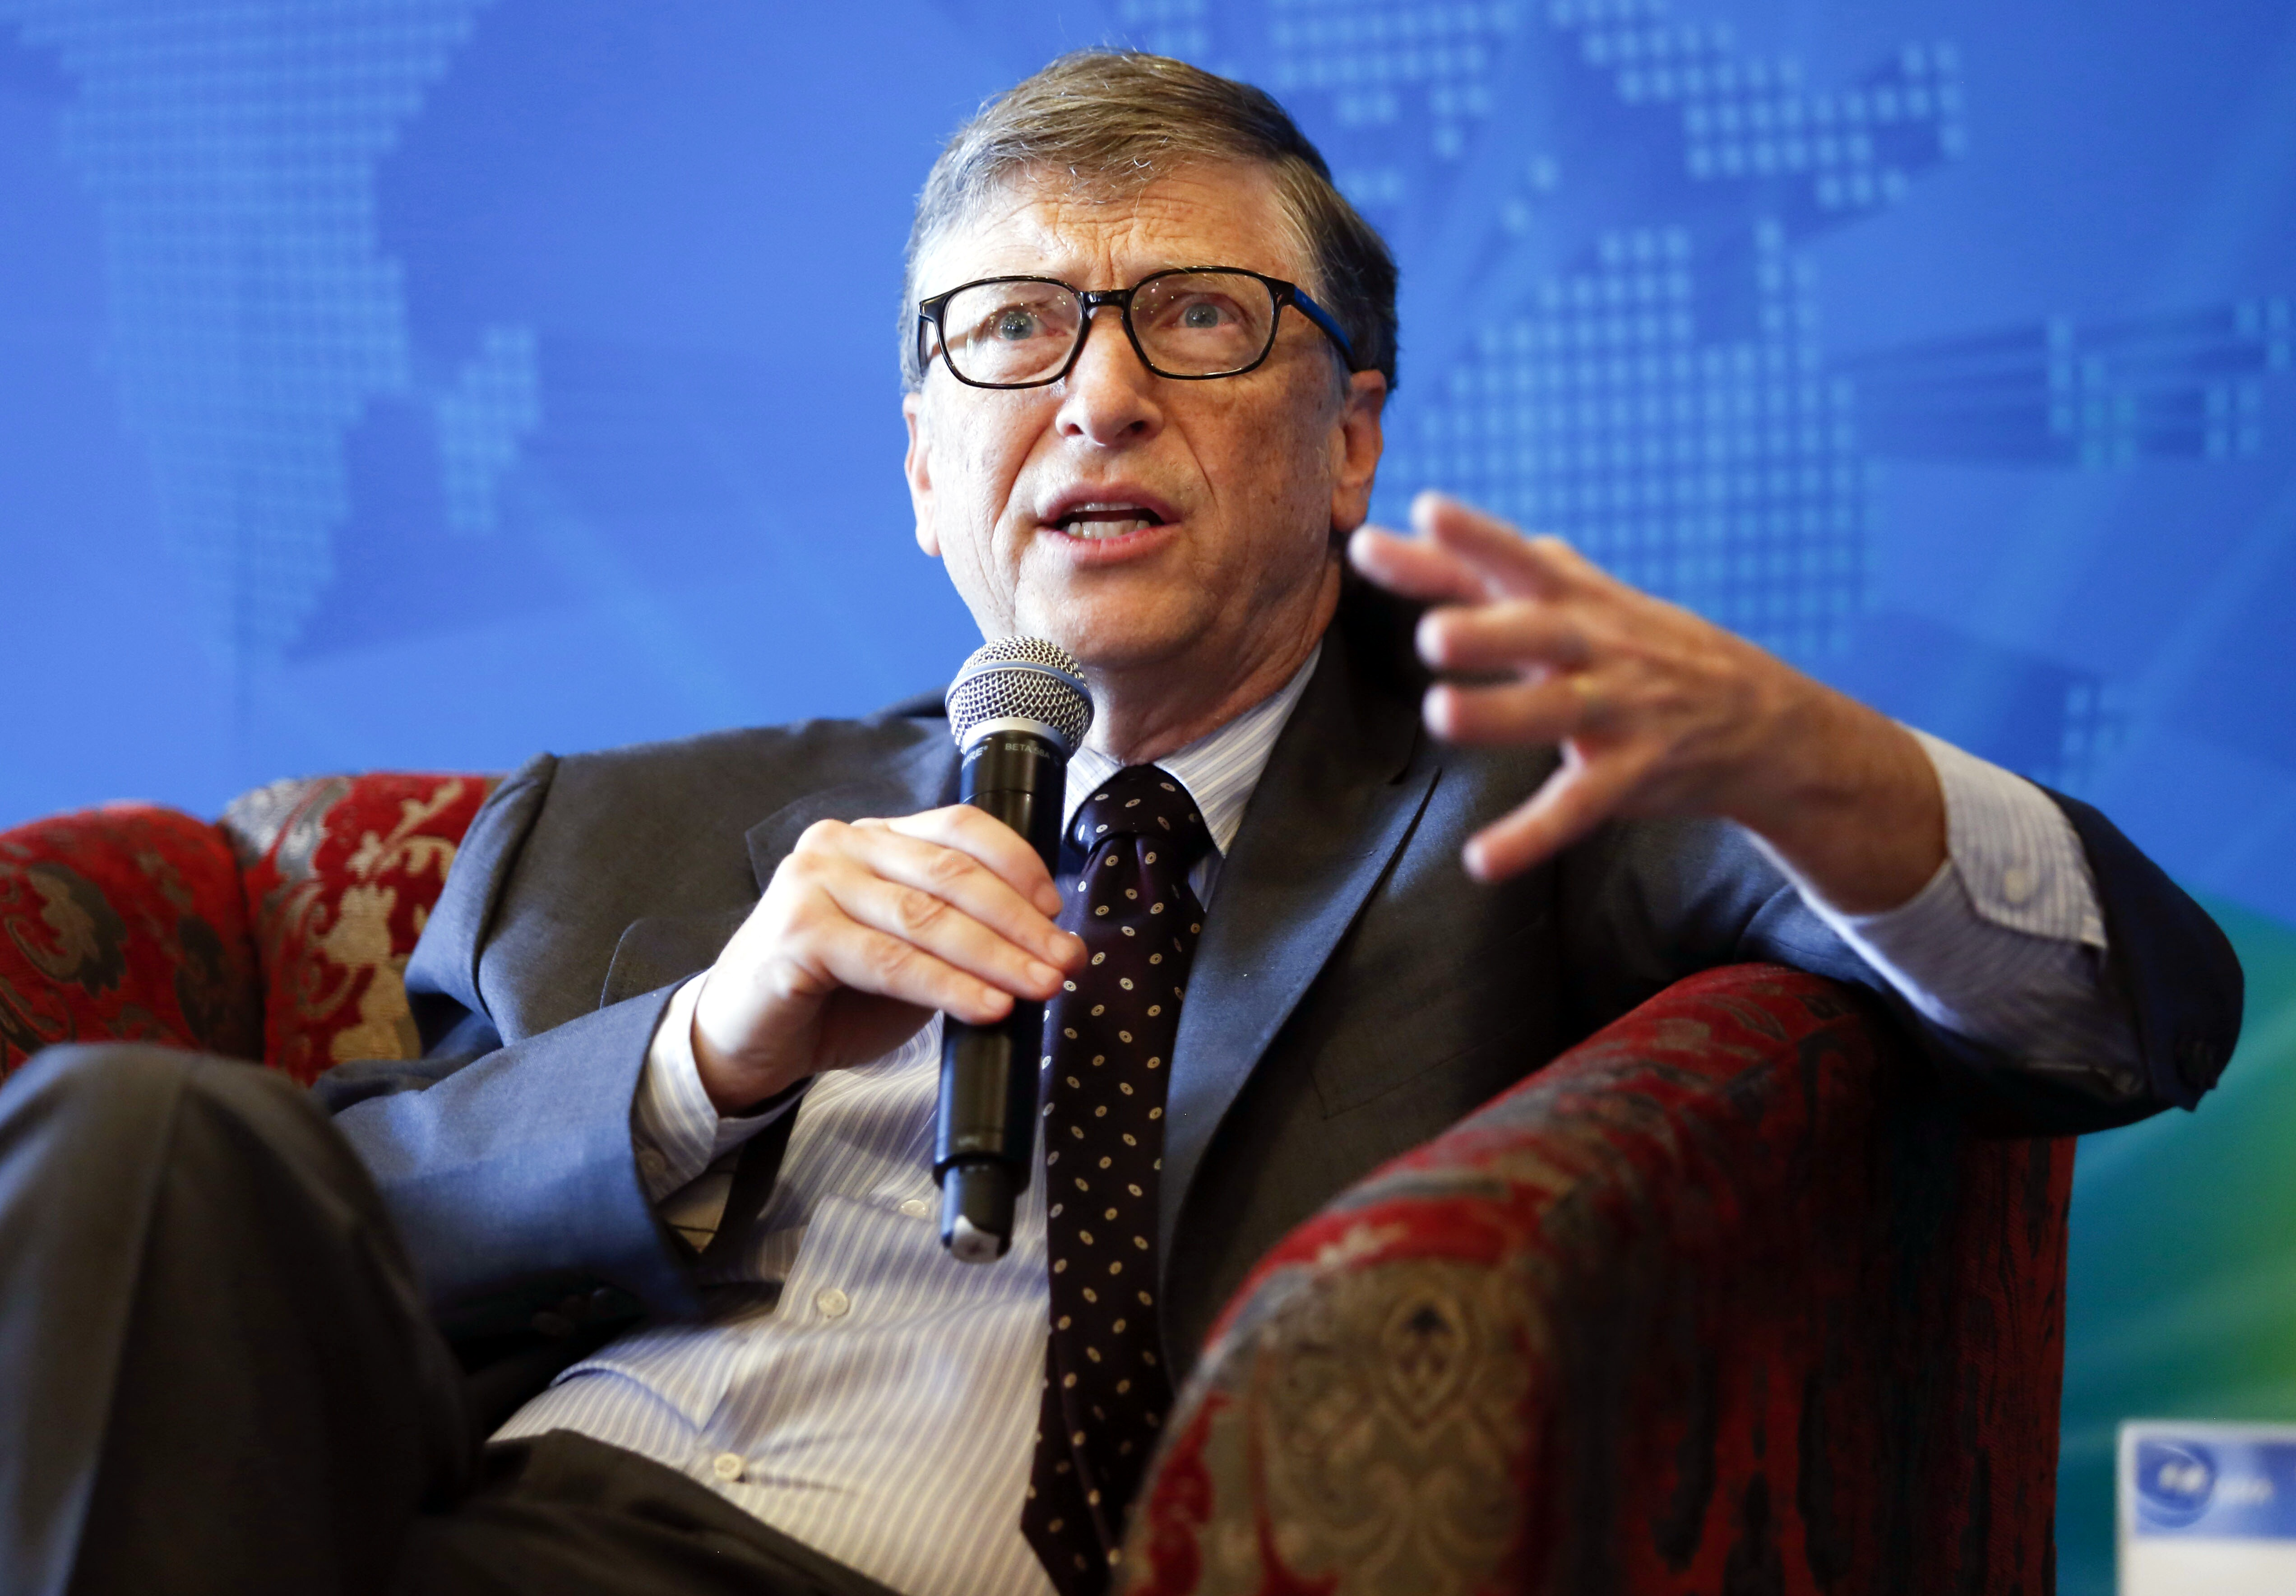 Bill Gates, co-founder of Microsoft and co-chair of the Bill and Melinda Gates Foundation, speaks at a breakfast meeting with the theme  Dialogue: Technology Innovation for a Sustainable Future  during the Boao Forum for Asia Annual Conference 2015 in Qionghai city, China's Hainan province, on March 29, 2015